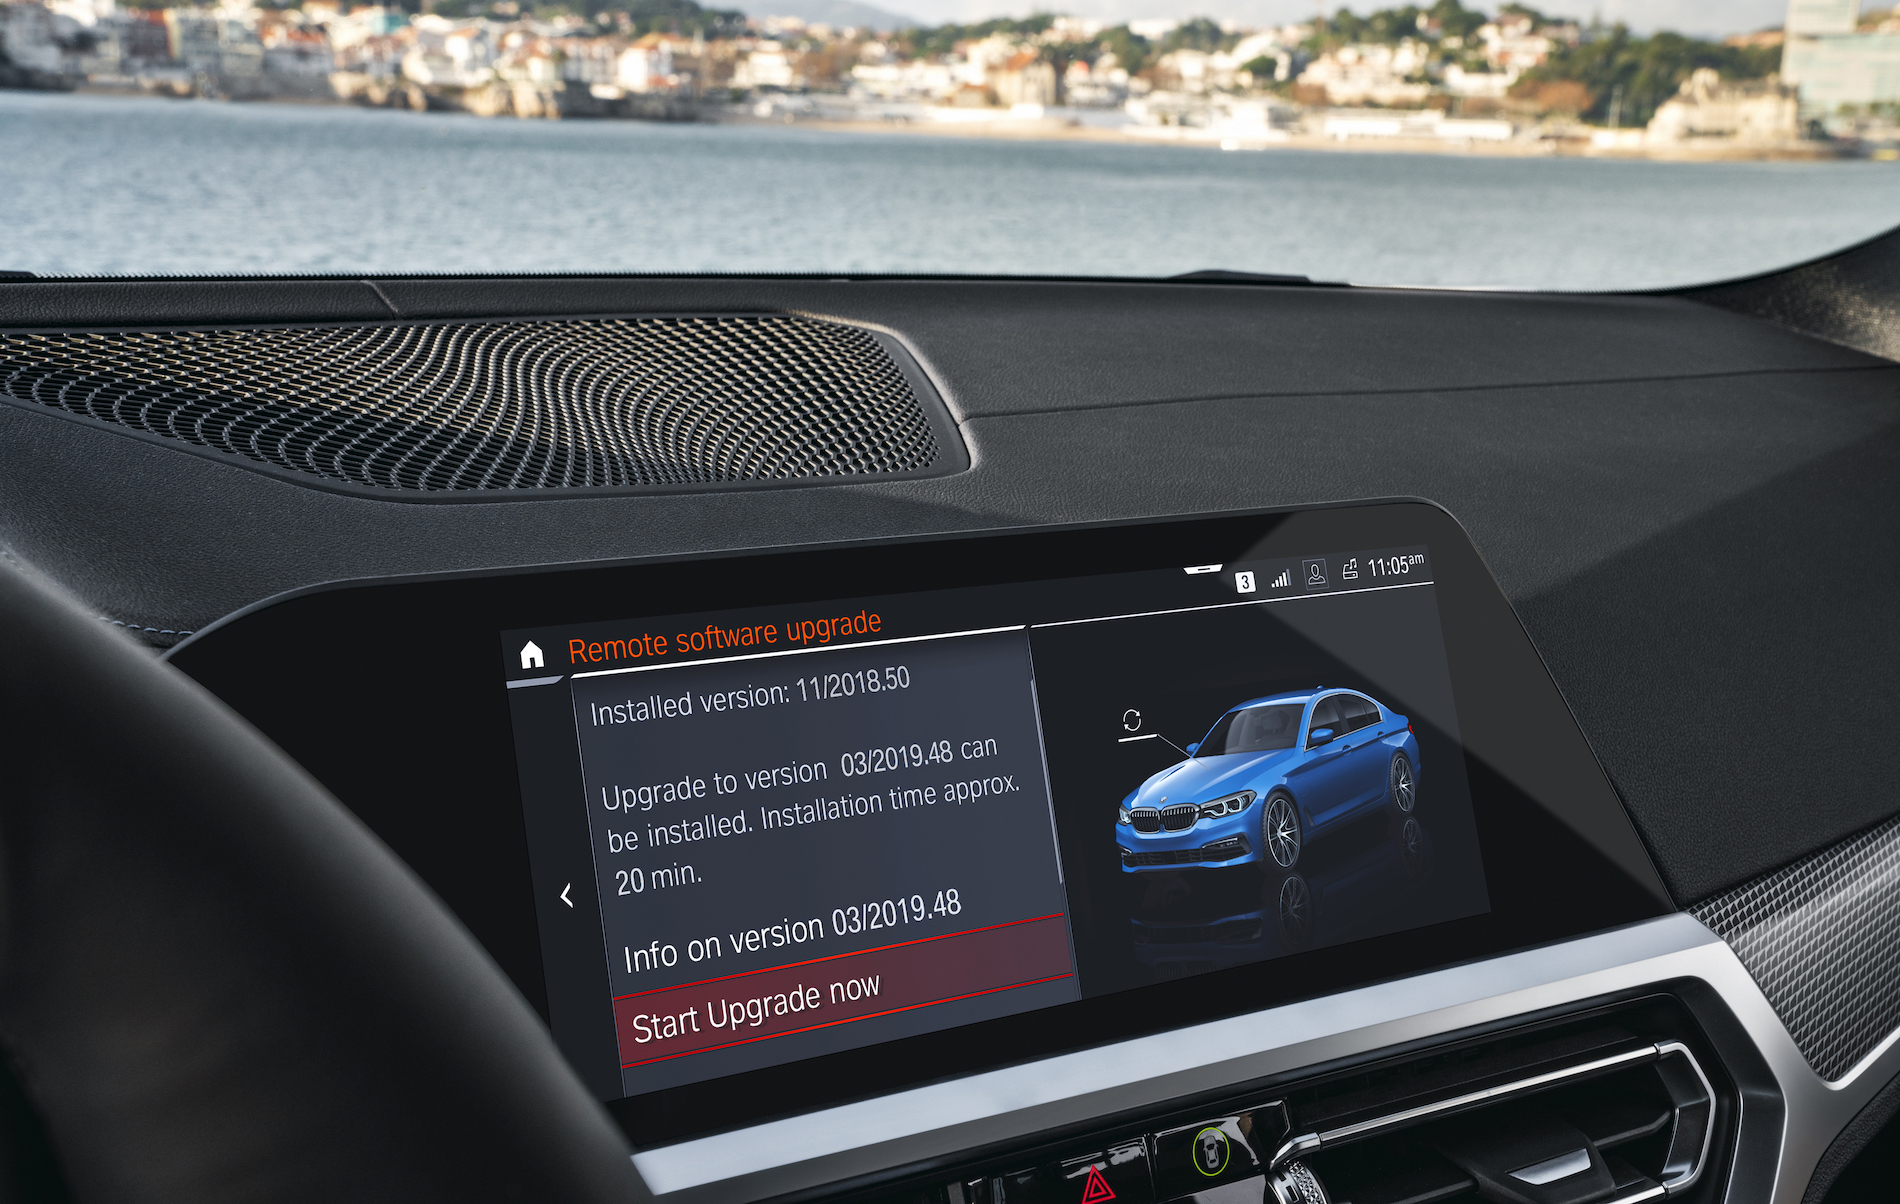 First Remote Software Upgrade  Over-The-Air installation for BMW